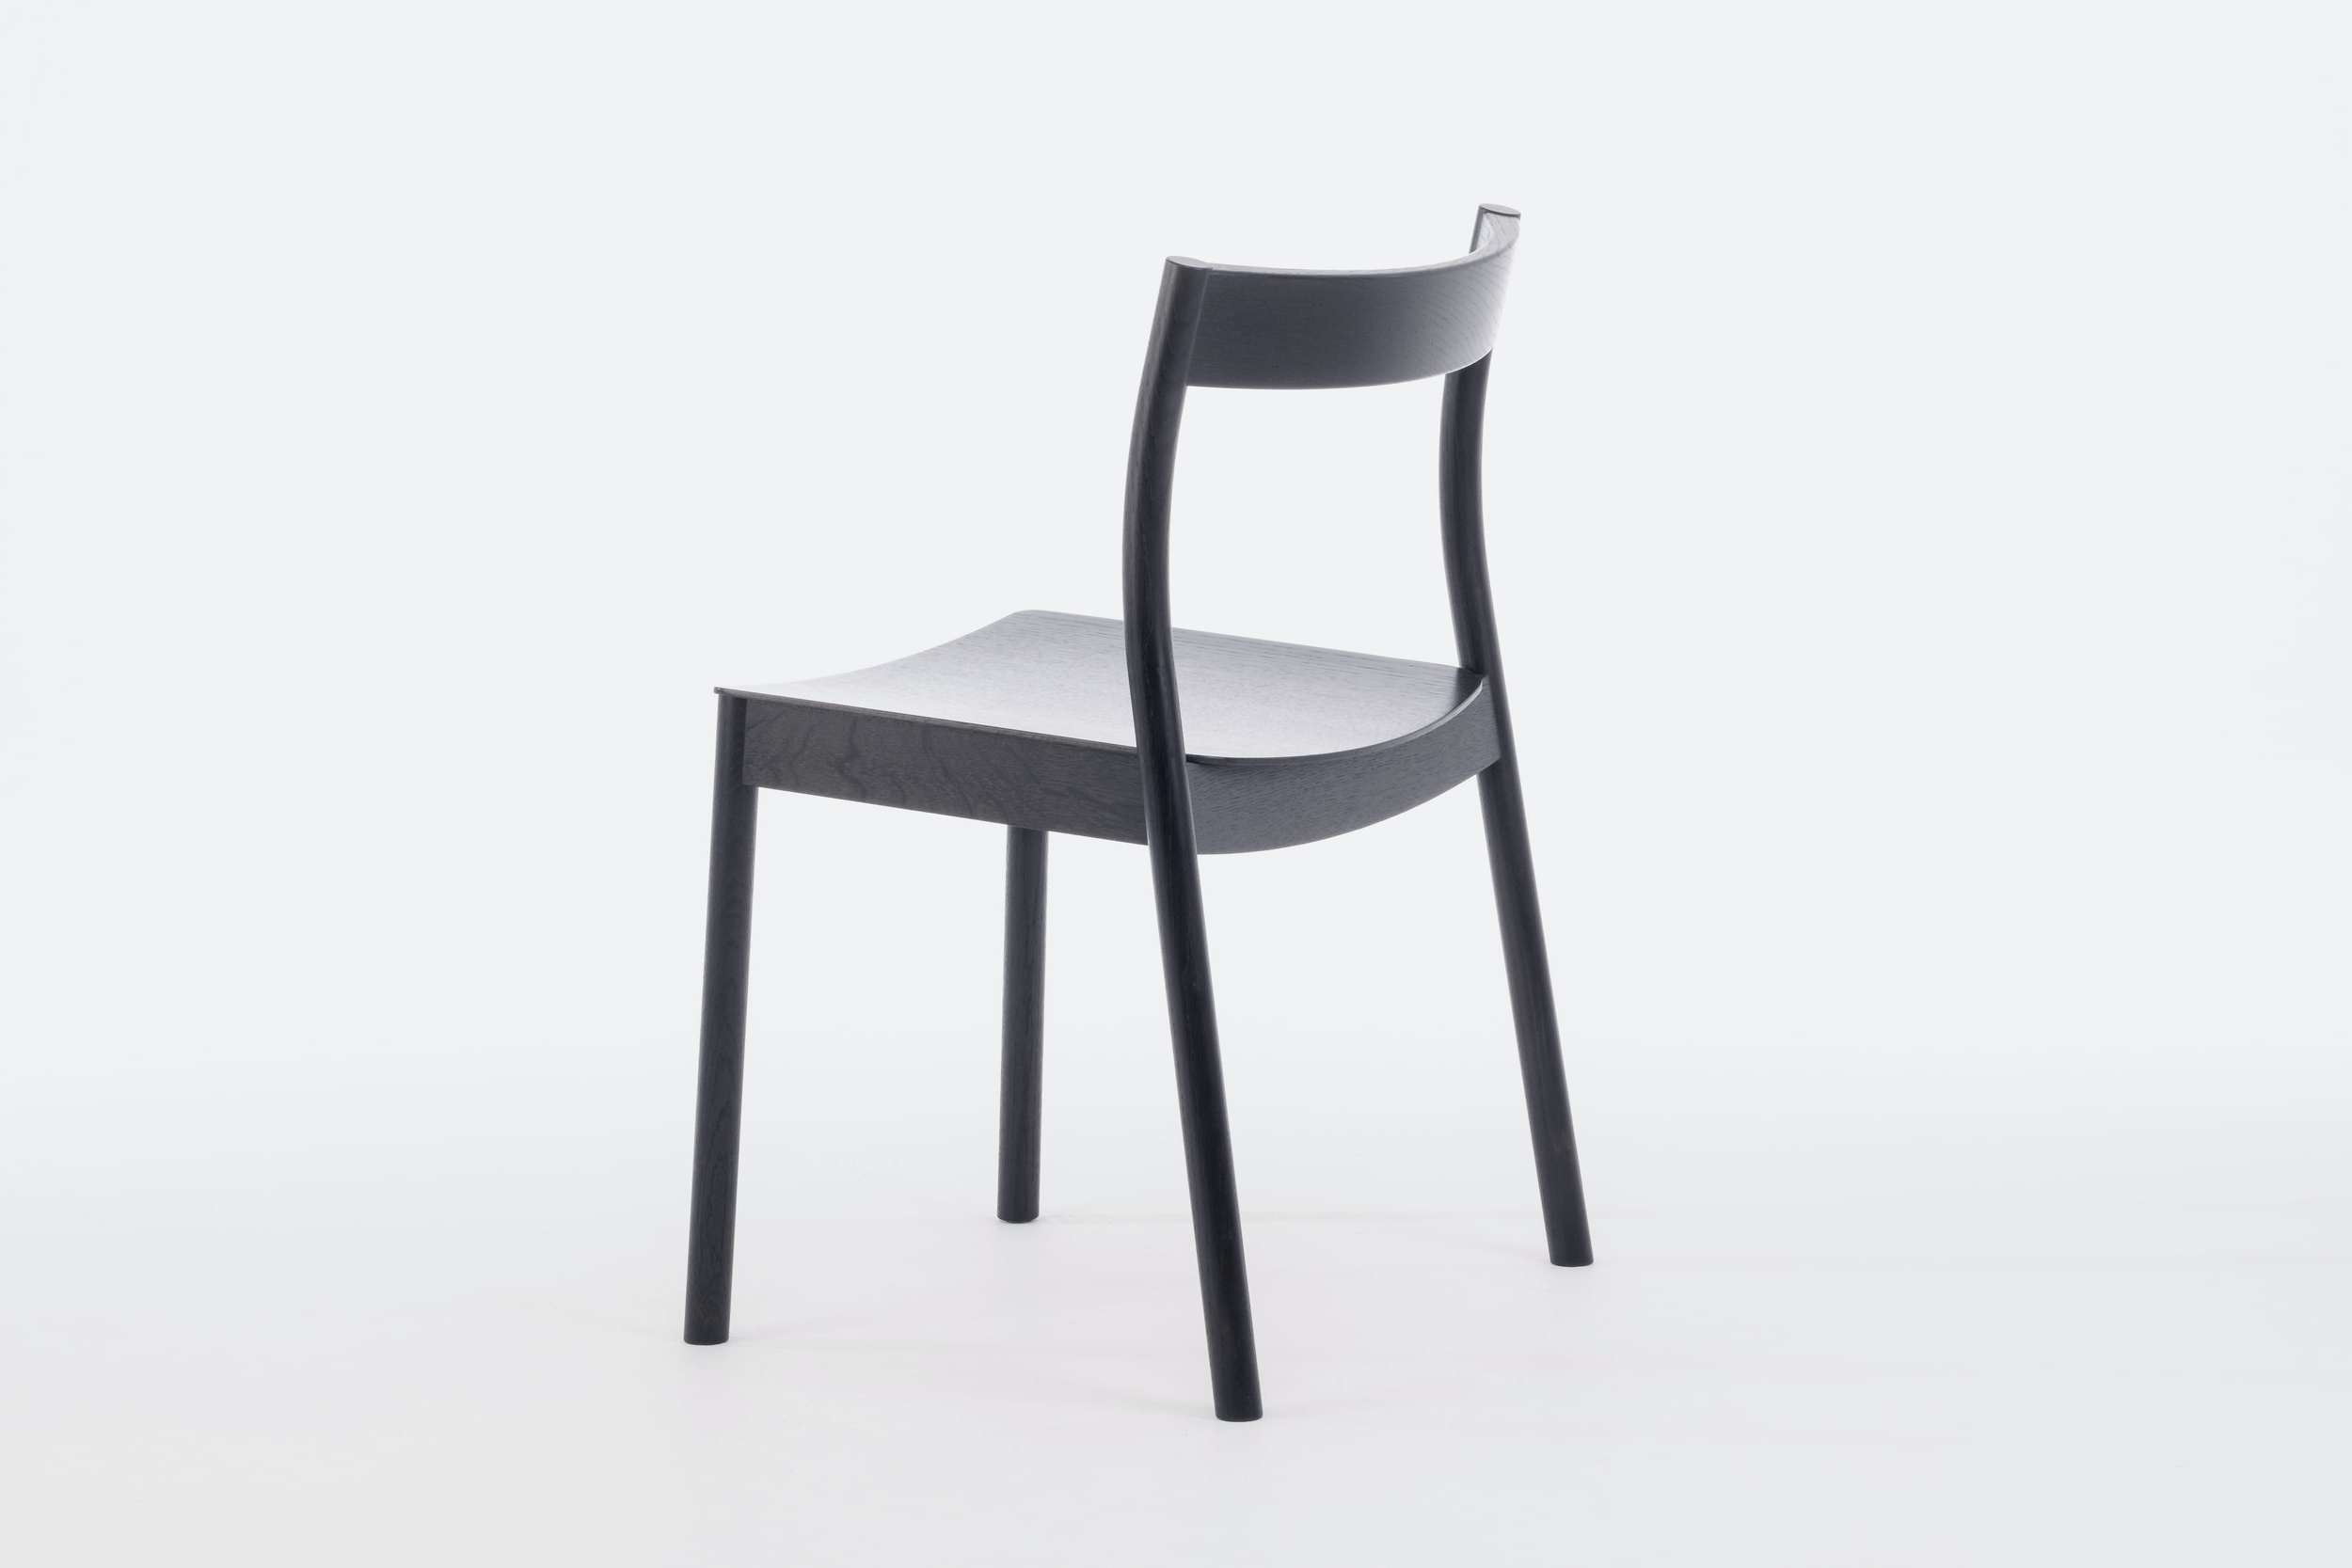 Alma Stacking Chair with Upholstered seat pad